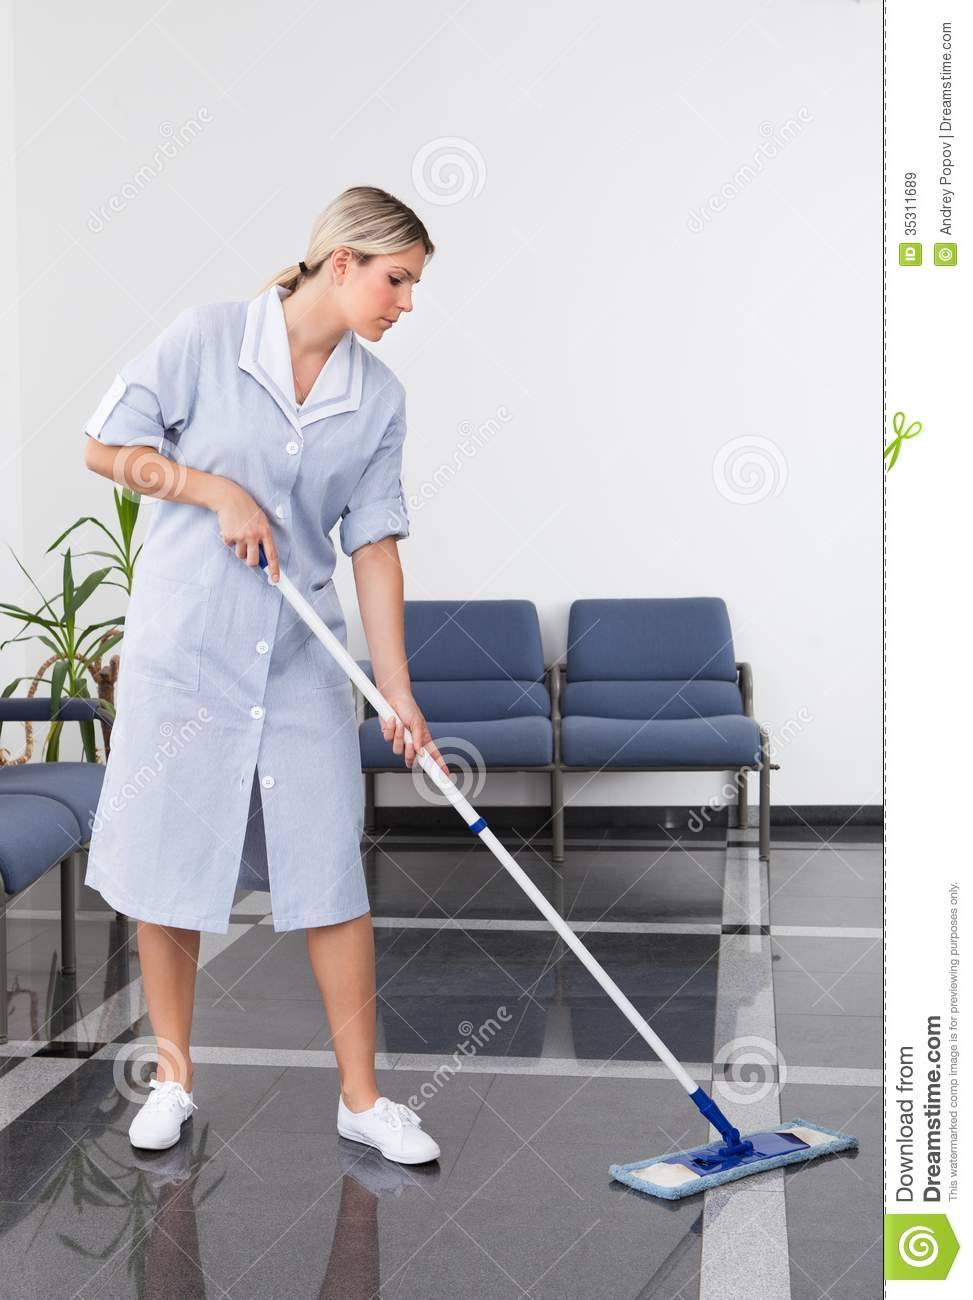 Maid Cleaning The Floor Royalty Free Stock Images Image